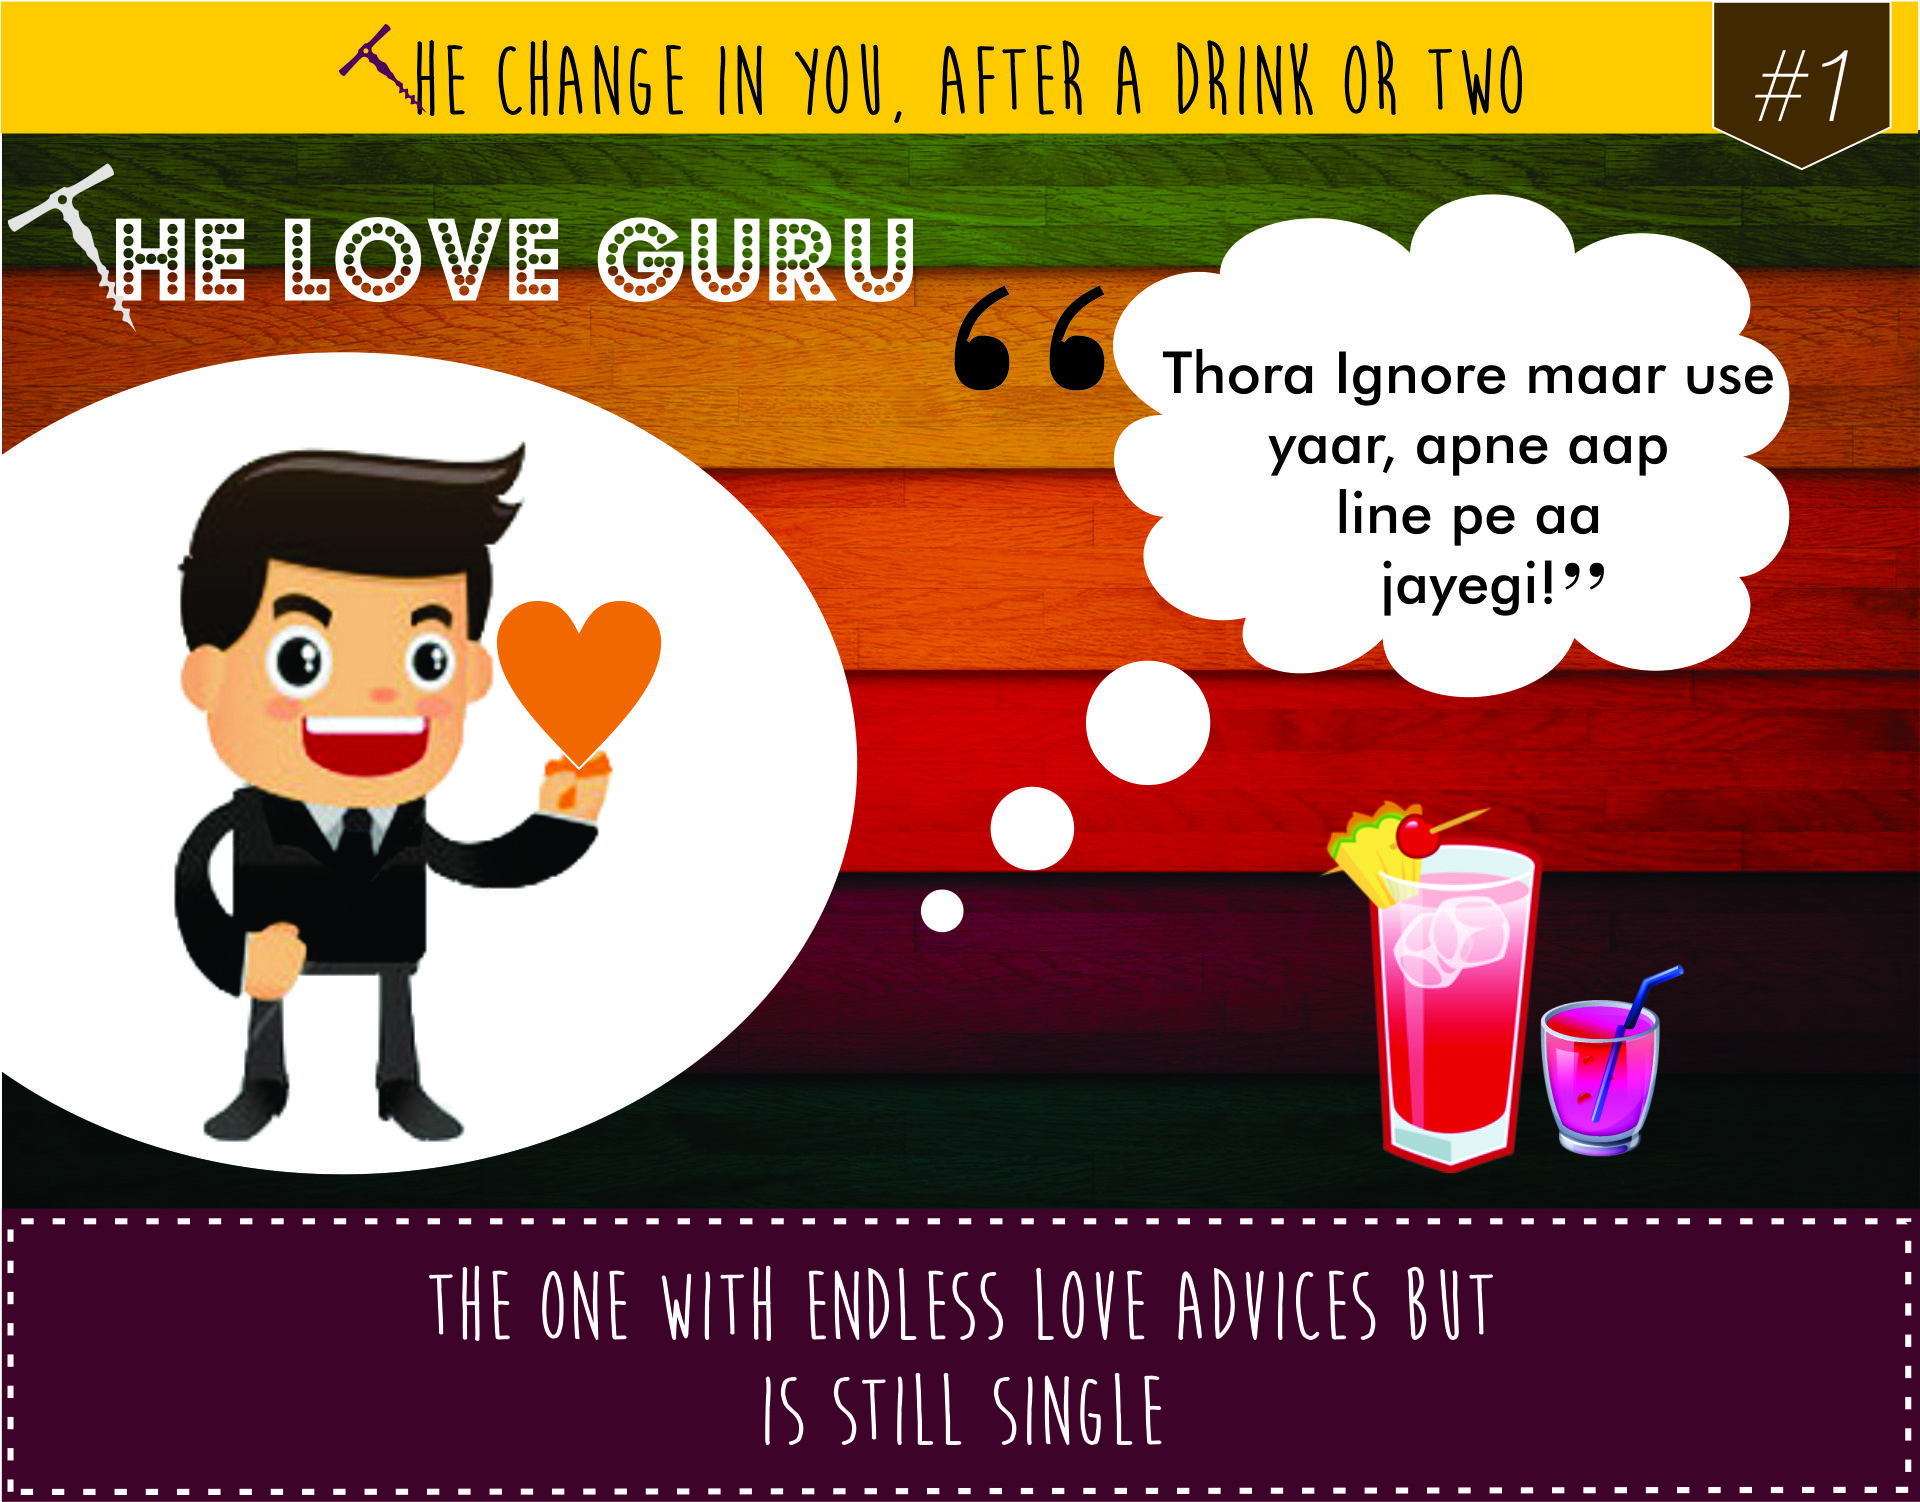 The Change in You after a Drink or Two! Tipple Point brings to you the most common characters we find at parties!